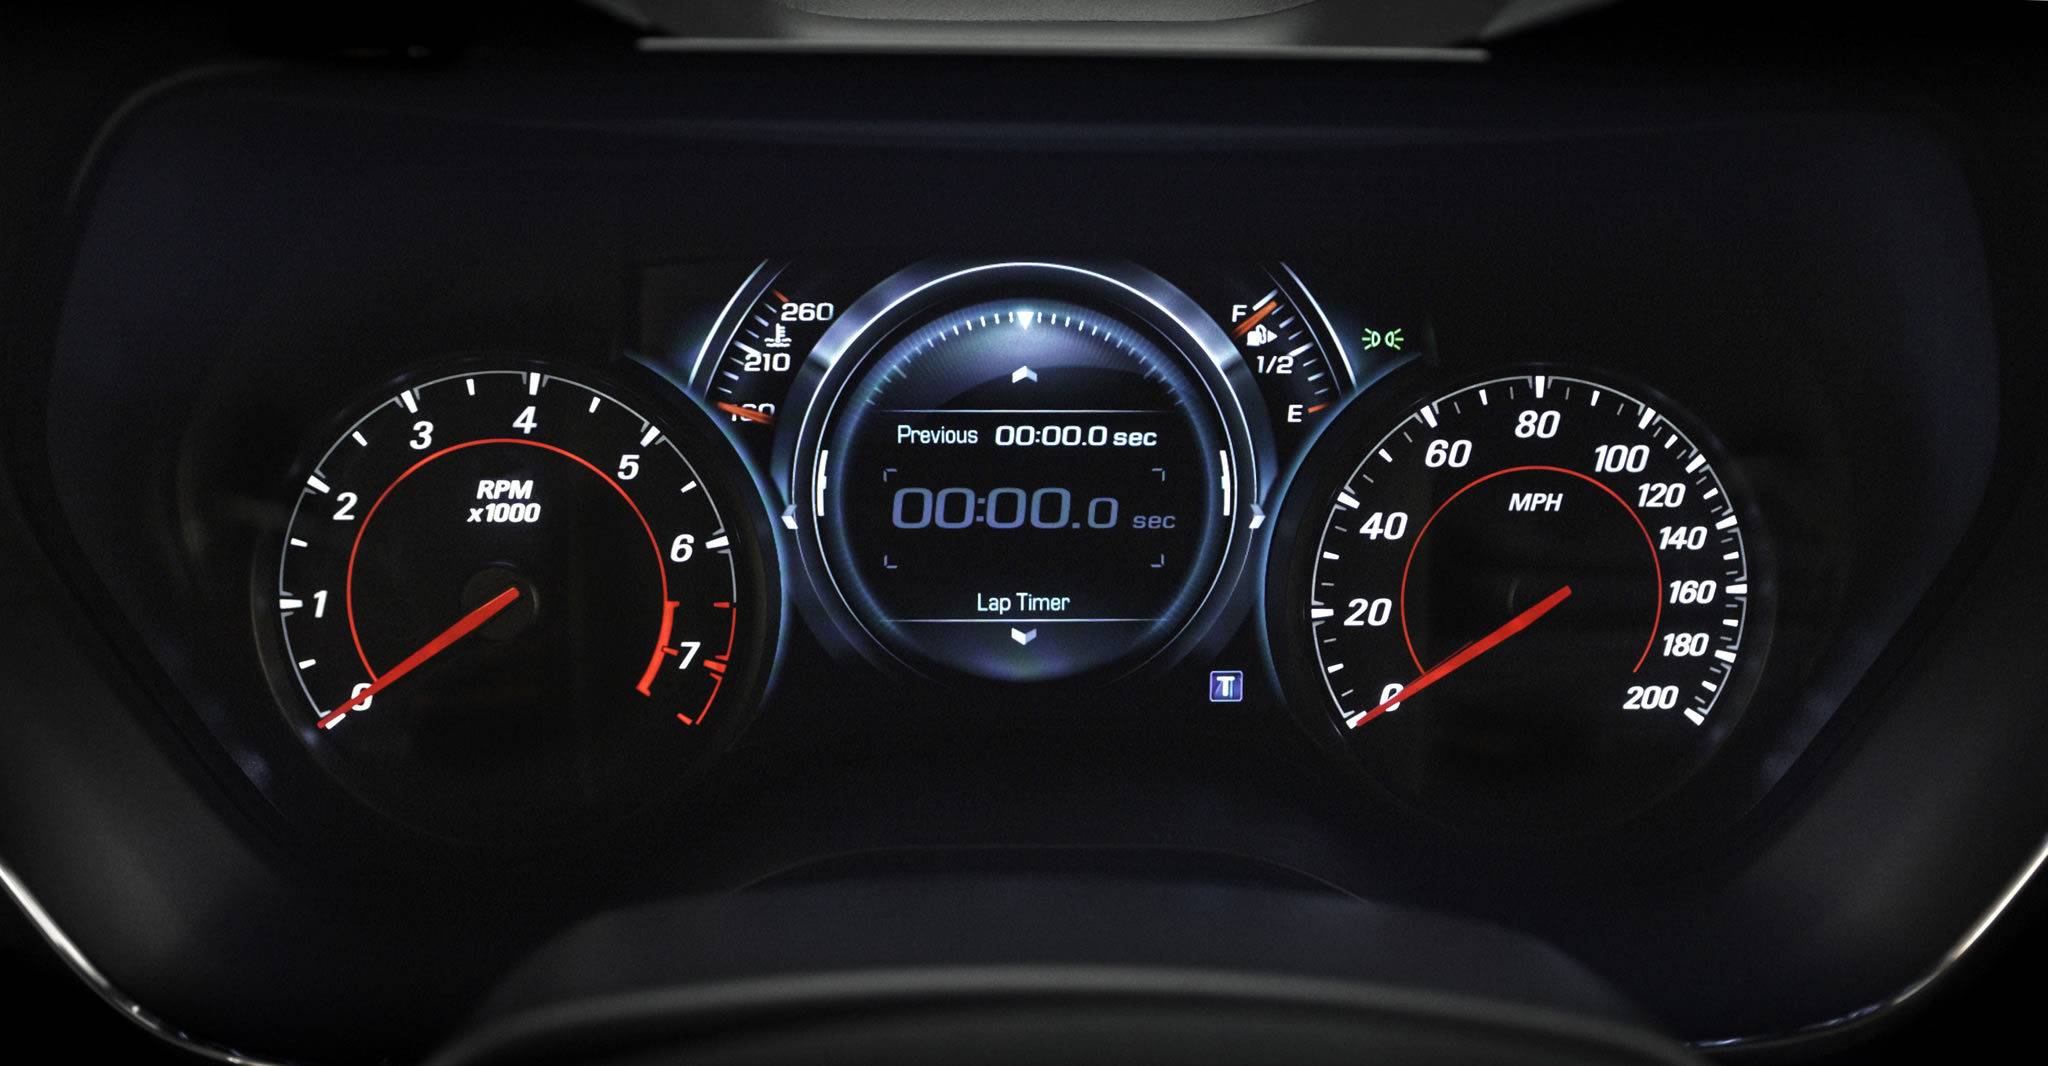 2016 Chevrolet Camaro Ss Detail Photo Speedometer Lap